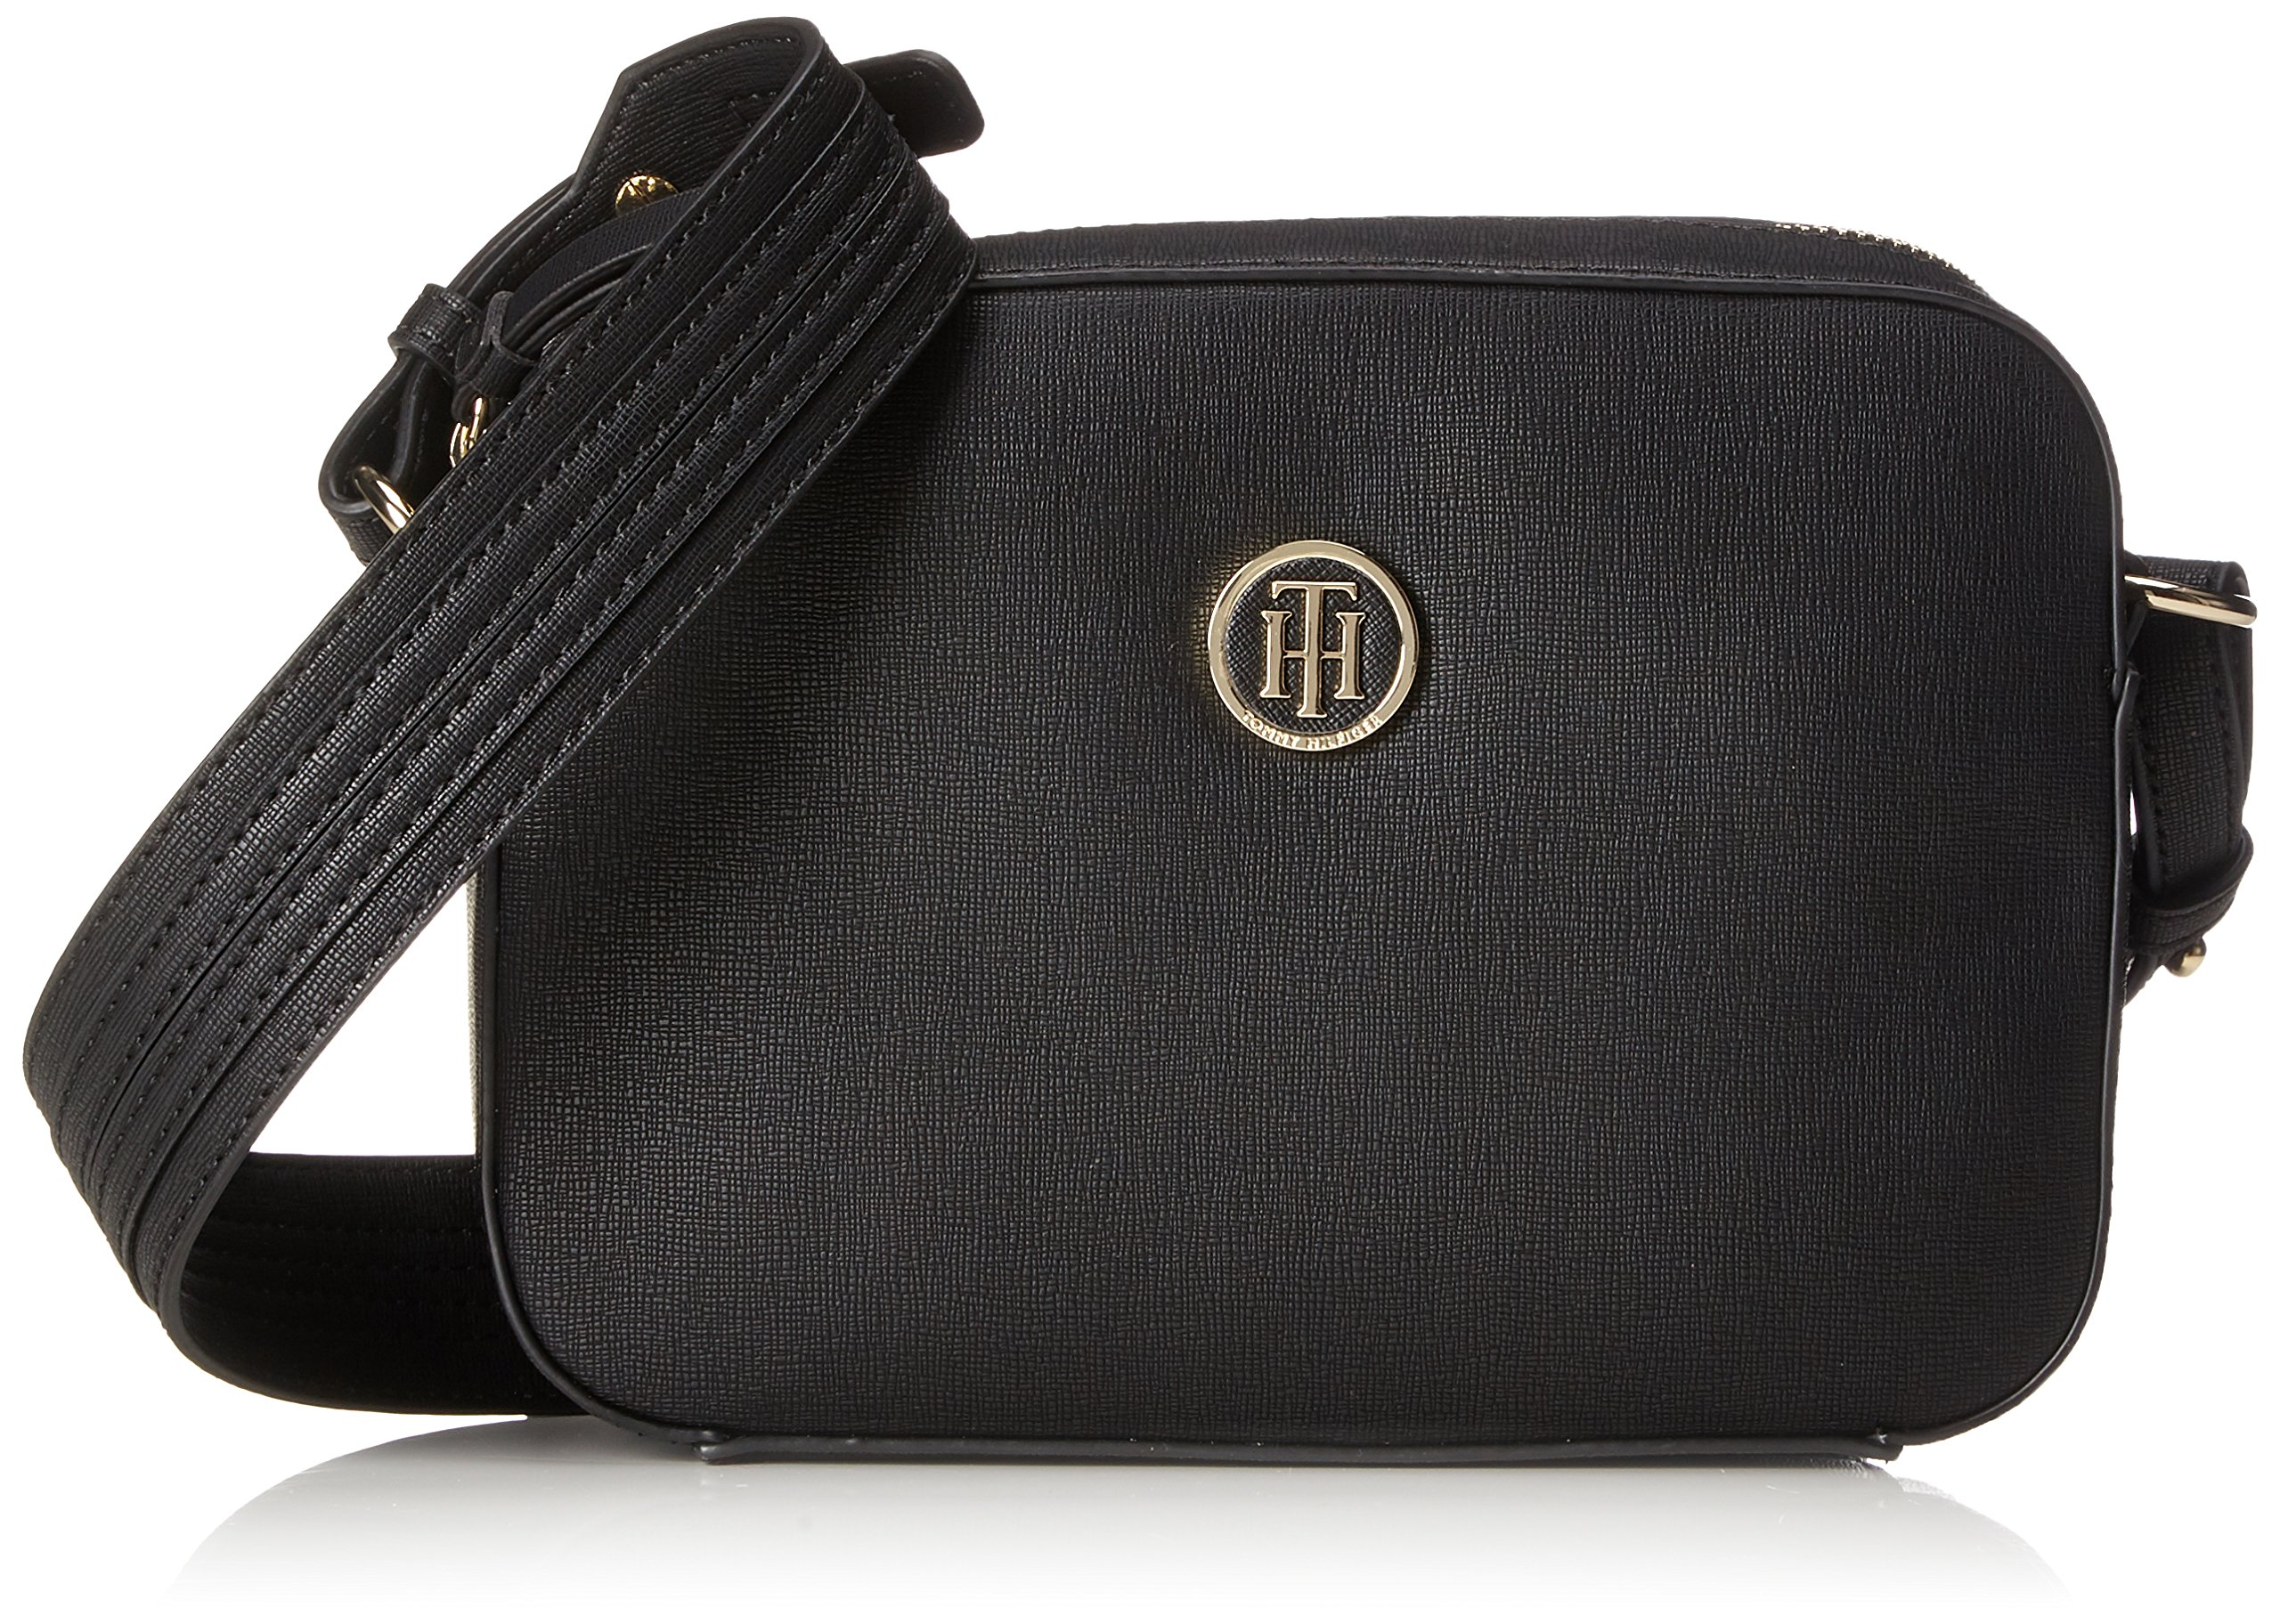 Tommy Hilfiger Th Signature Strap Camera Bag, Women's Bag Organiser, Black, 16x17x22 cm (B x H T)